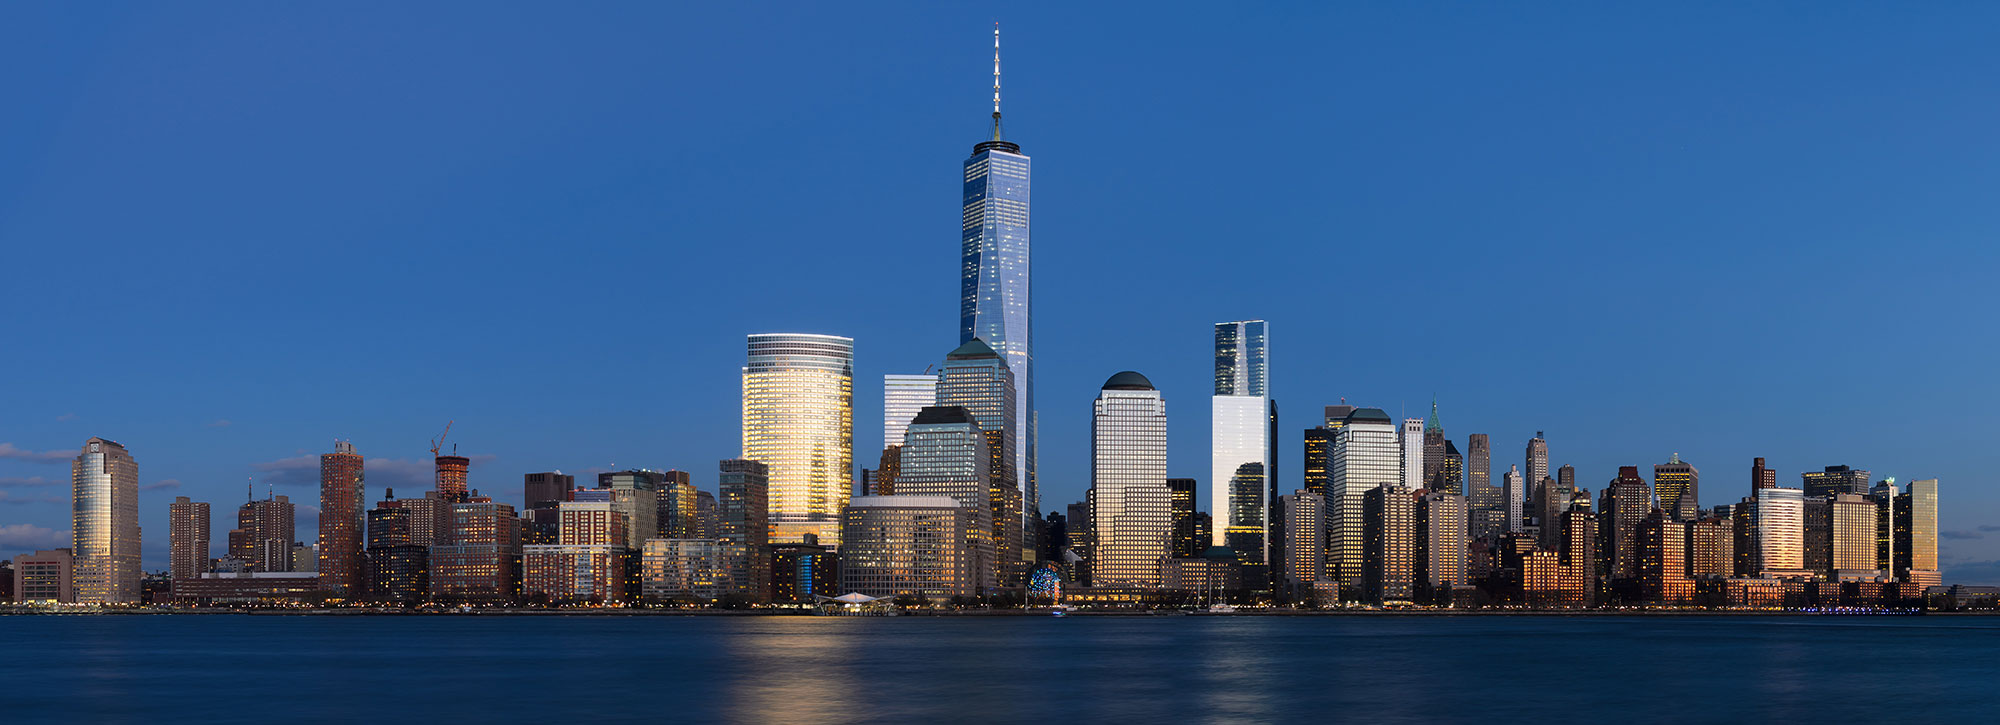 Lower_Manhattan_from_Jersey_City_November_2014_panorama_3-1.jpg